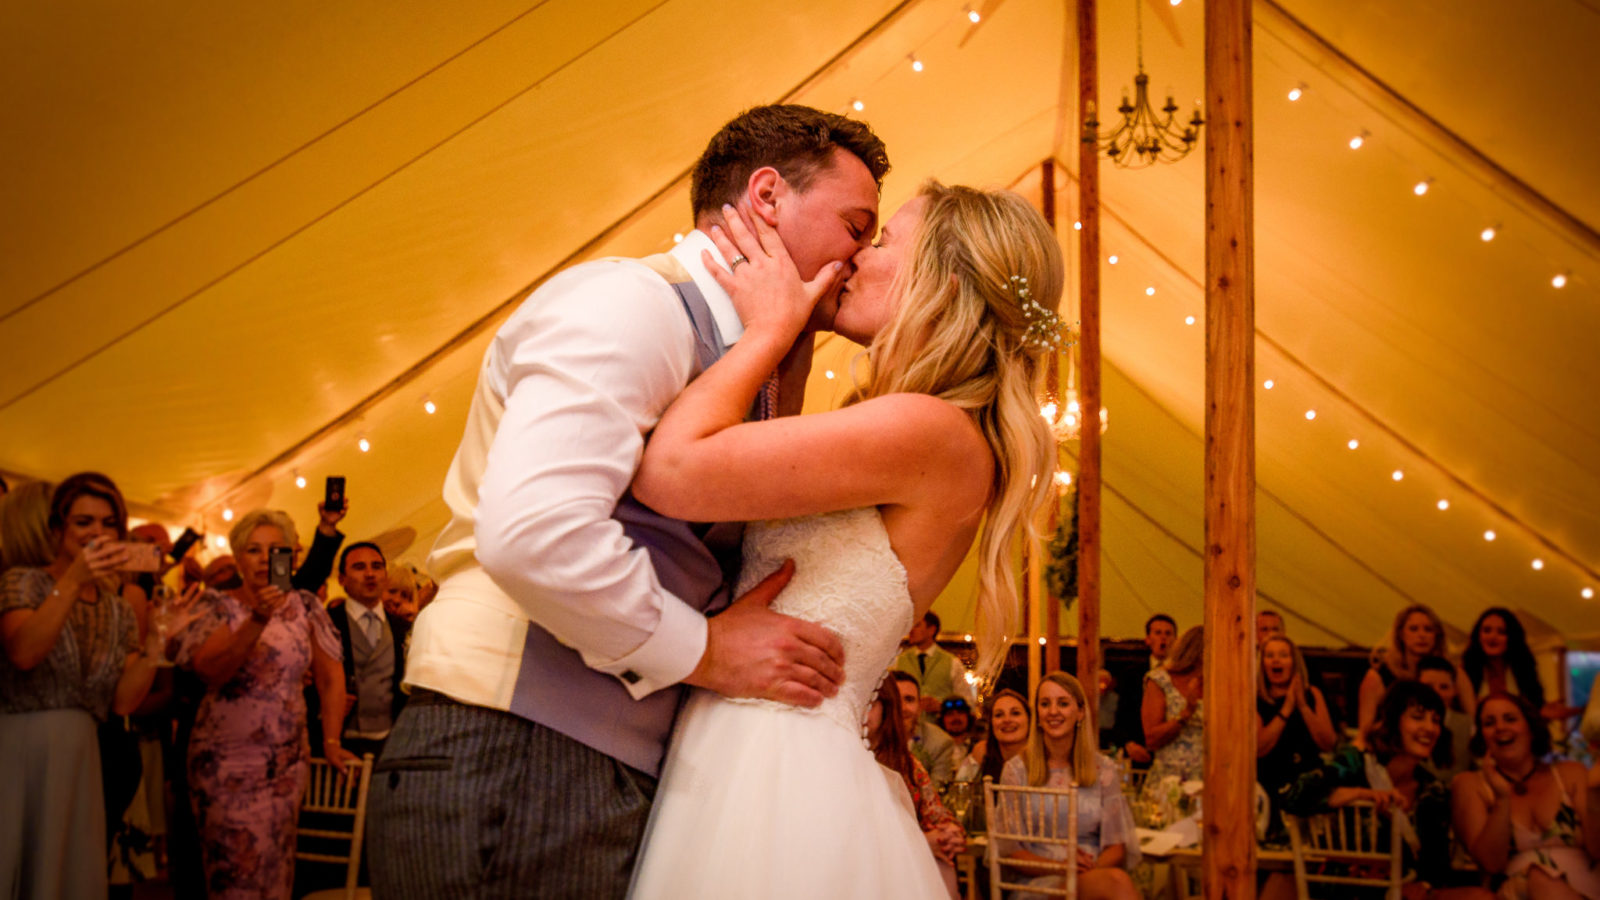 A bride and groom kissing during their first dance at their venue Old Oak Farm Wedding Venue in Somerset